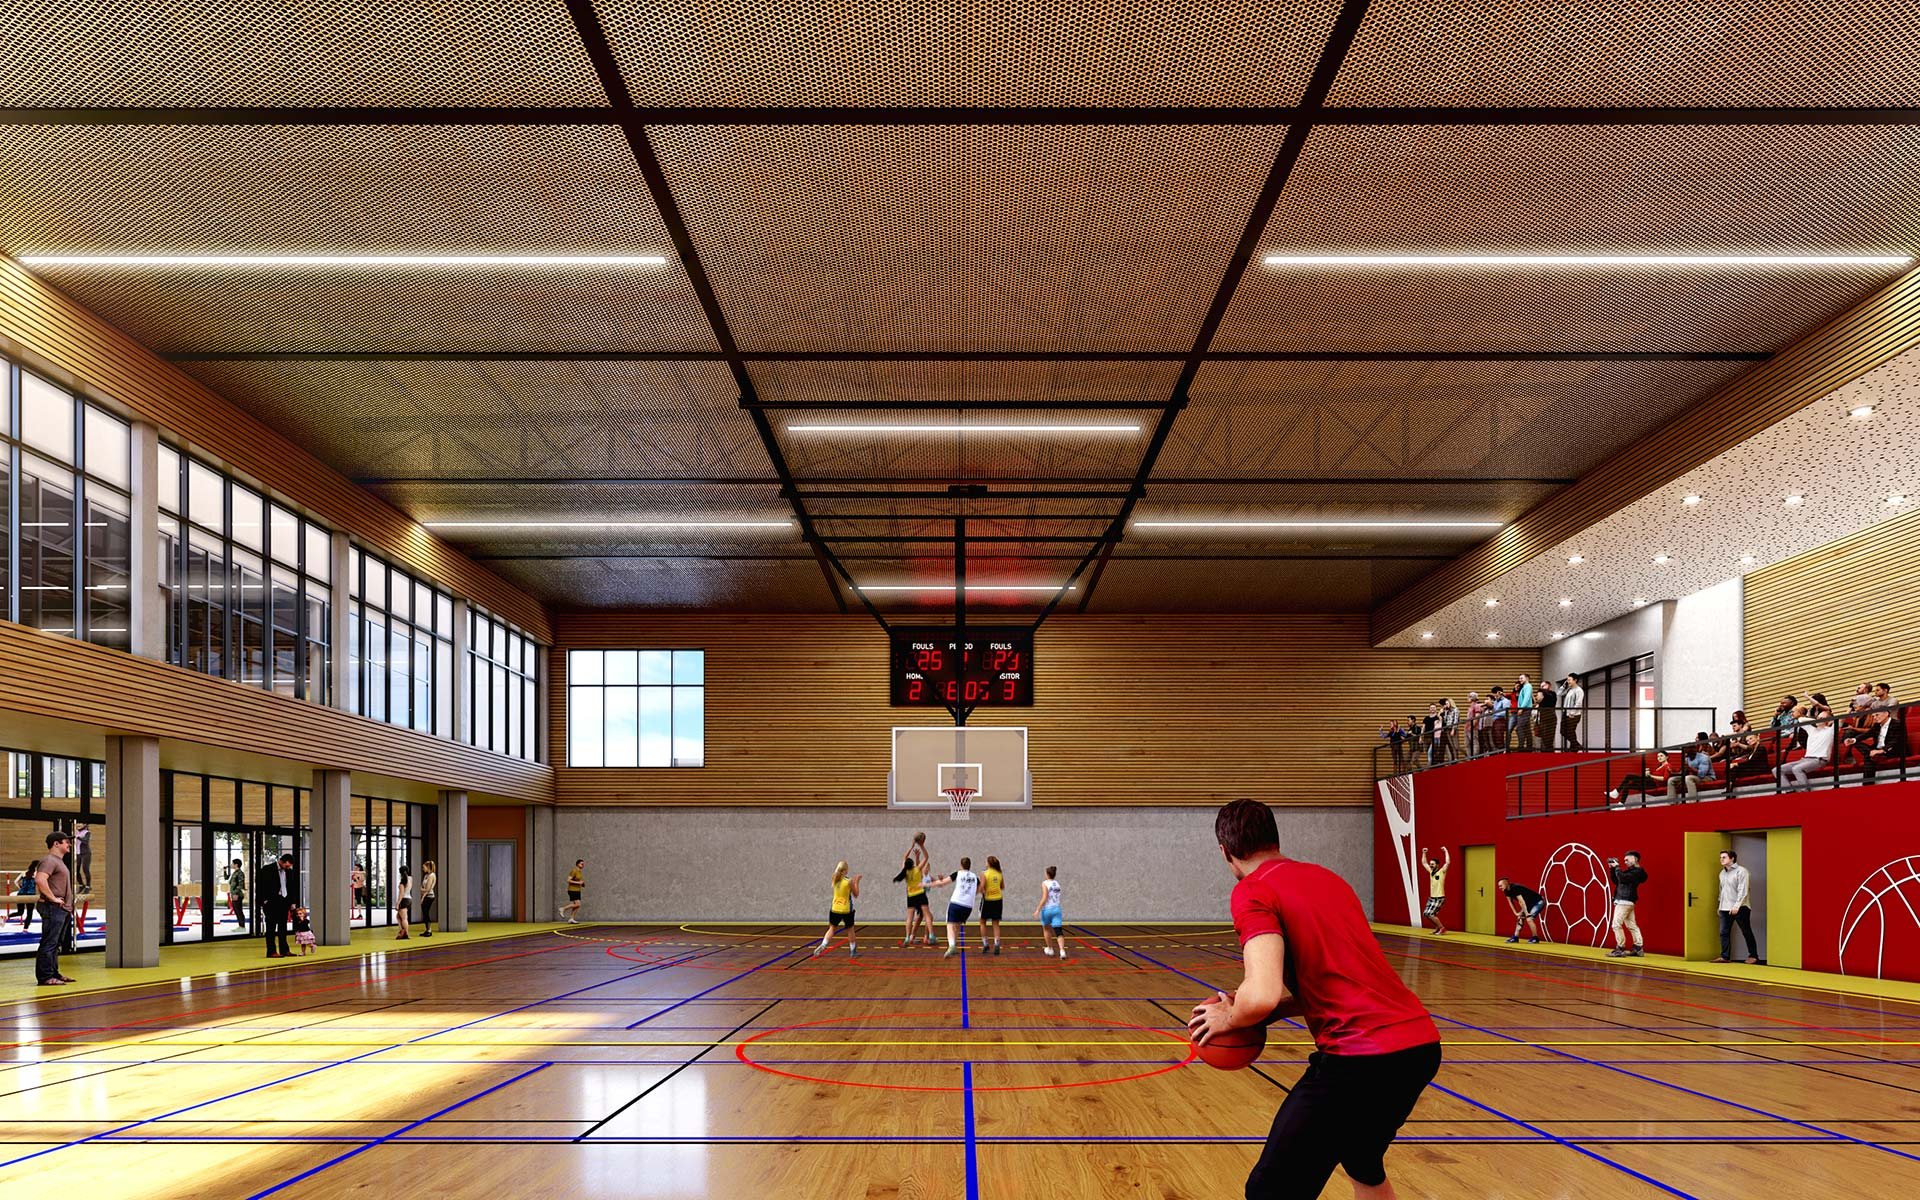 Interior 3D perspective of a big sports hall basketball competition